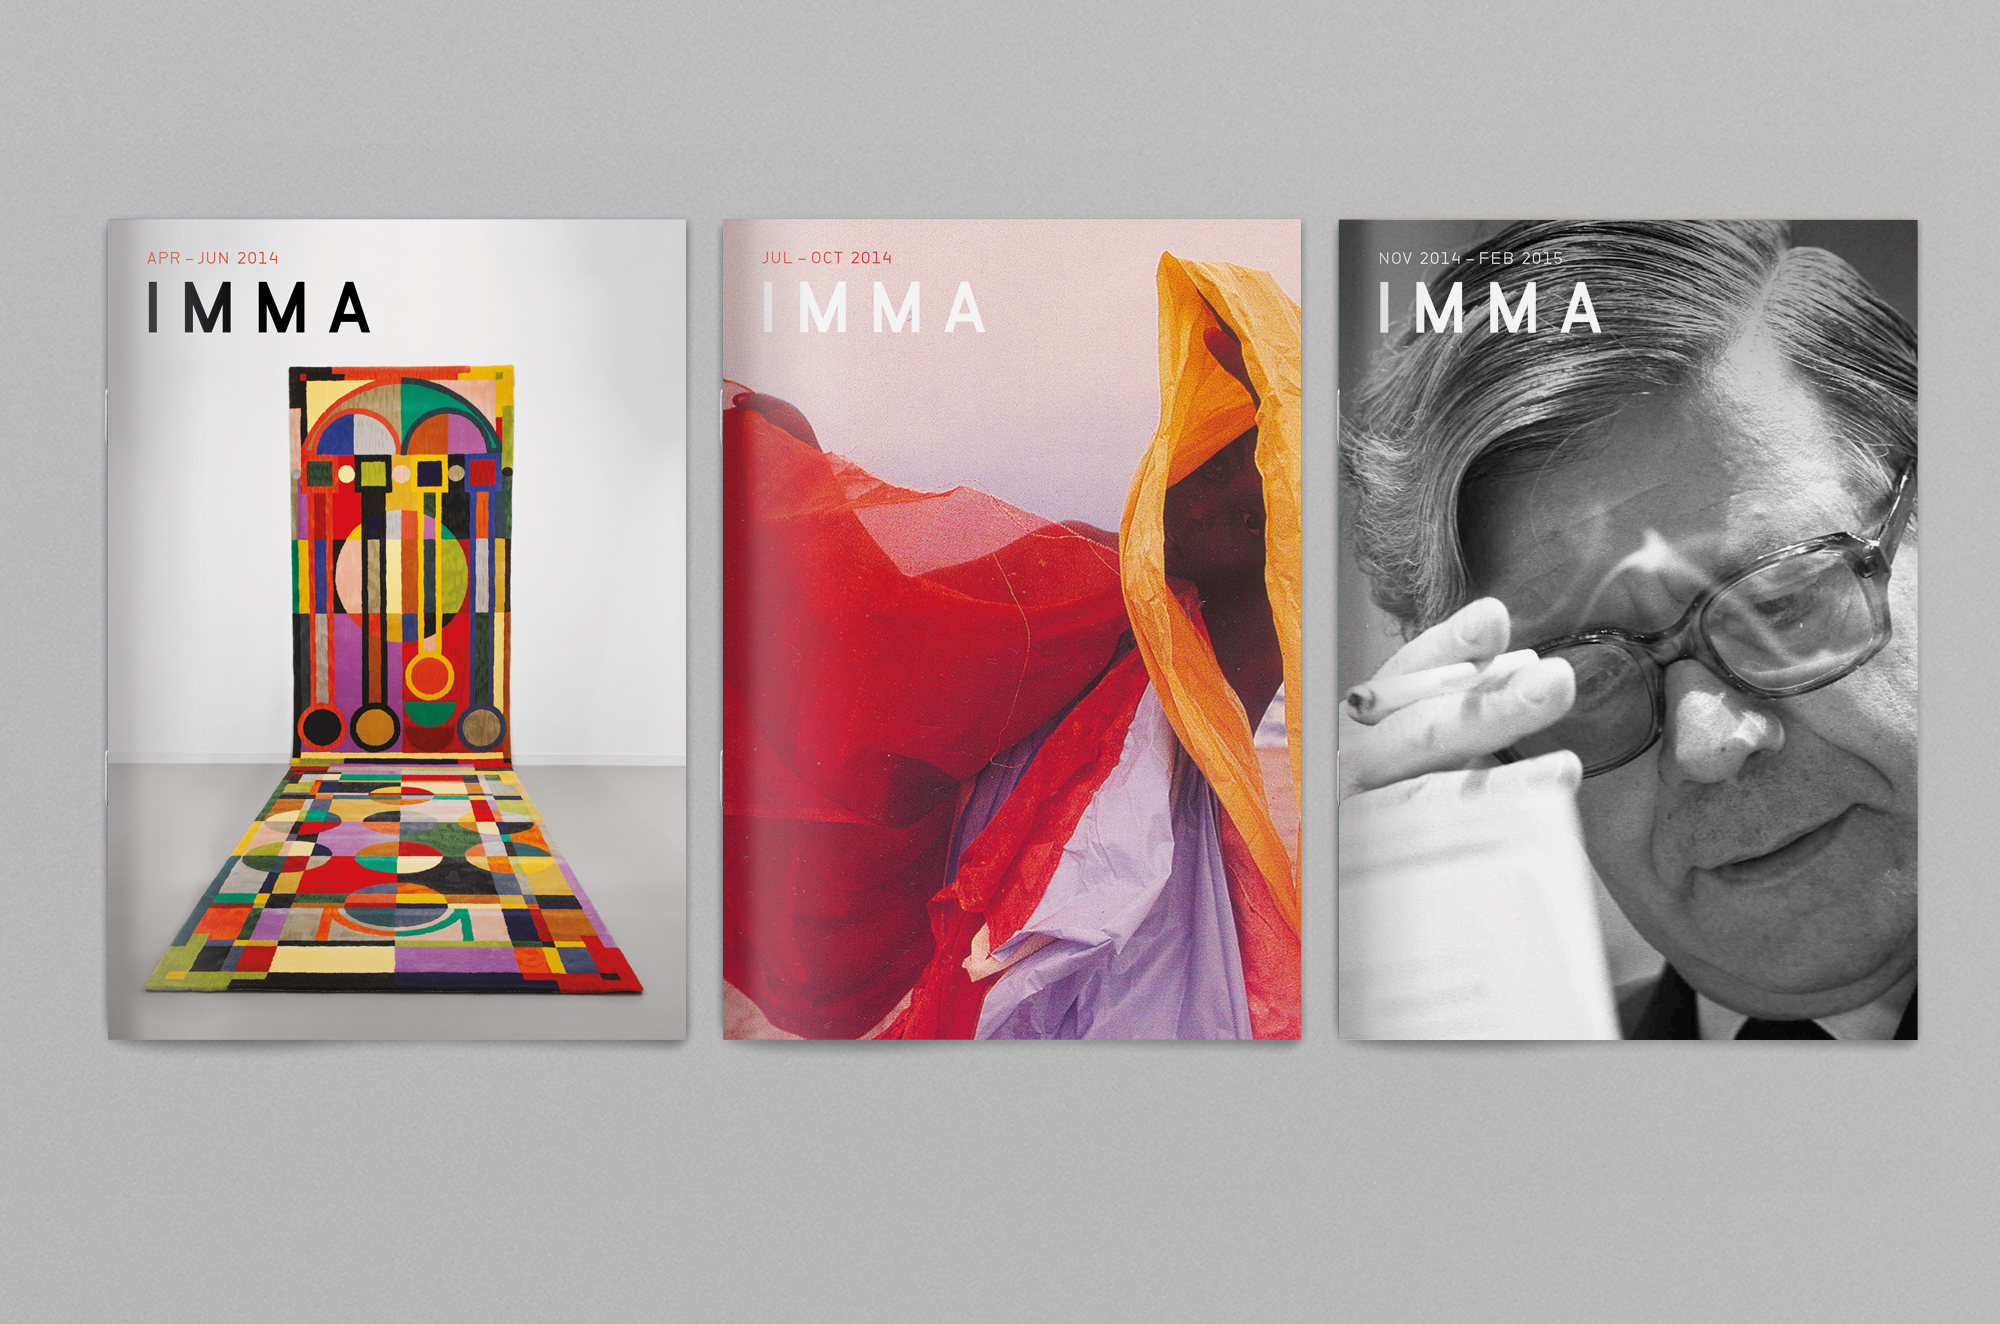 Cover image: IMMA events